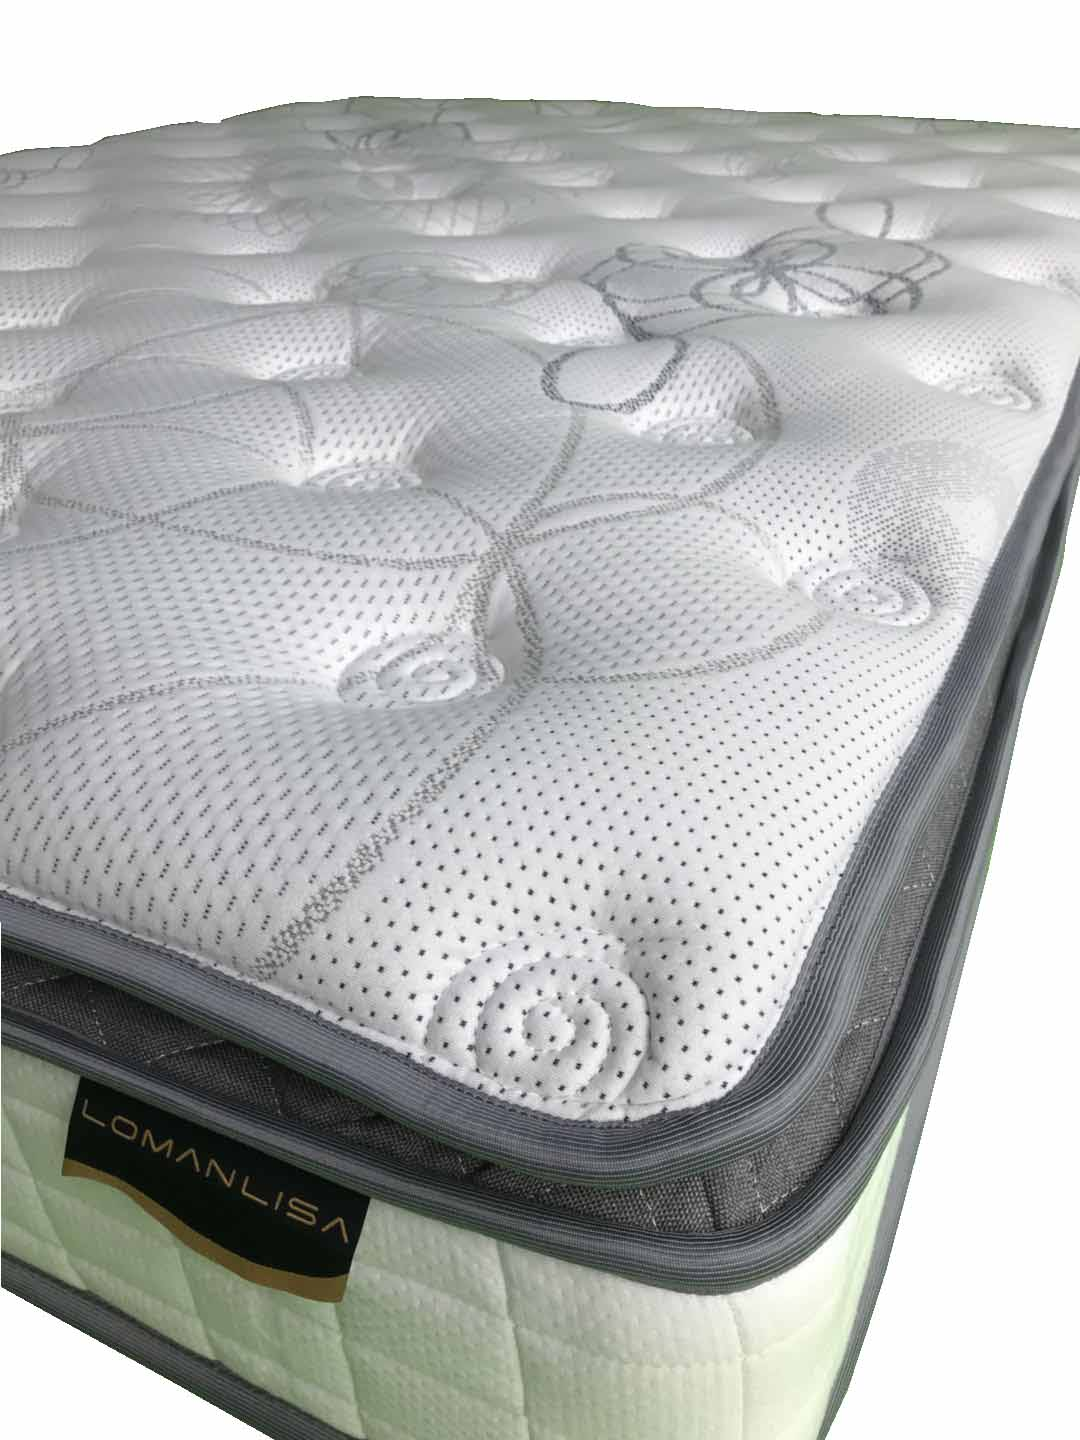 Posture Care Single Size Pocket Spring Mattress